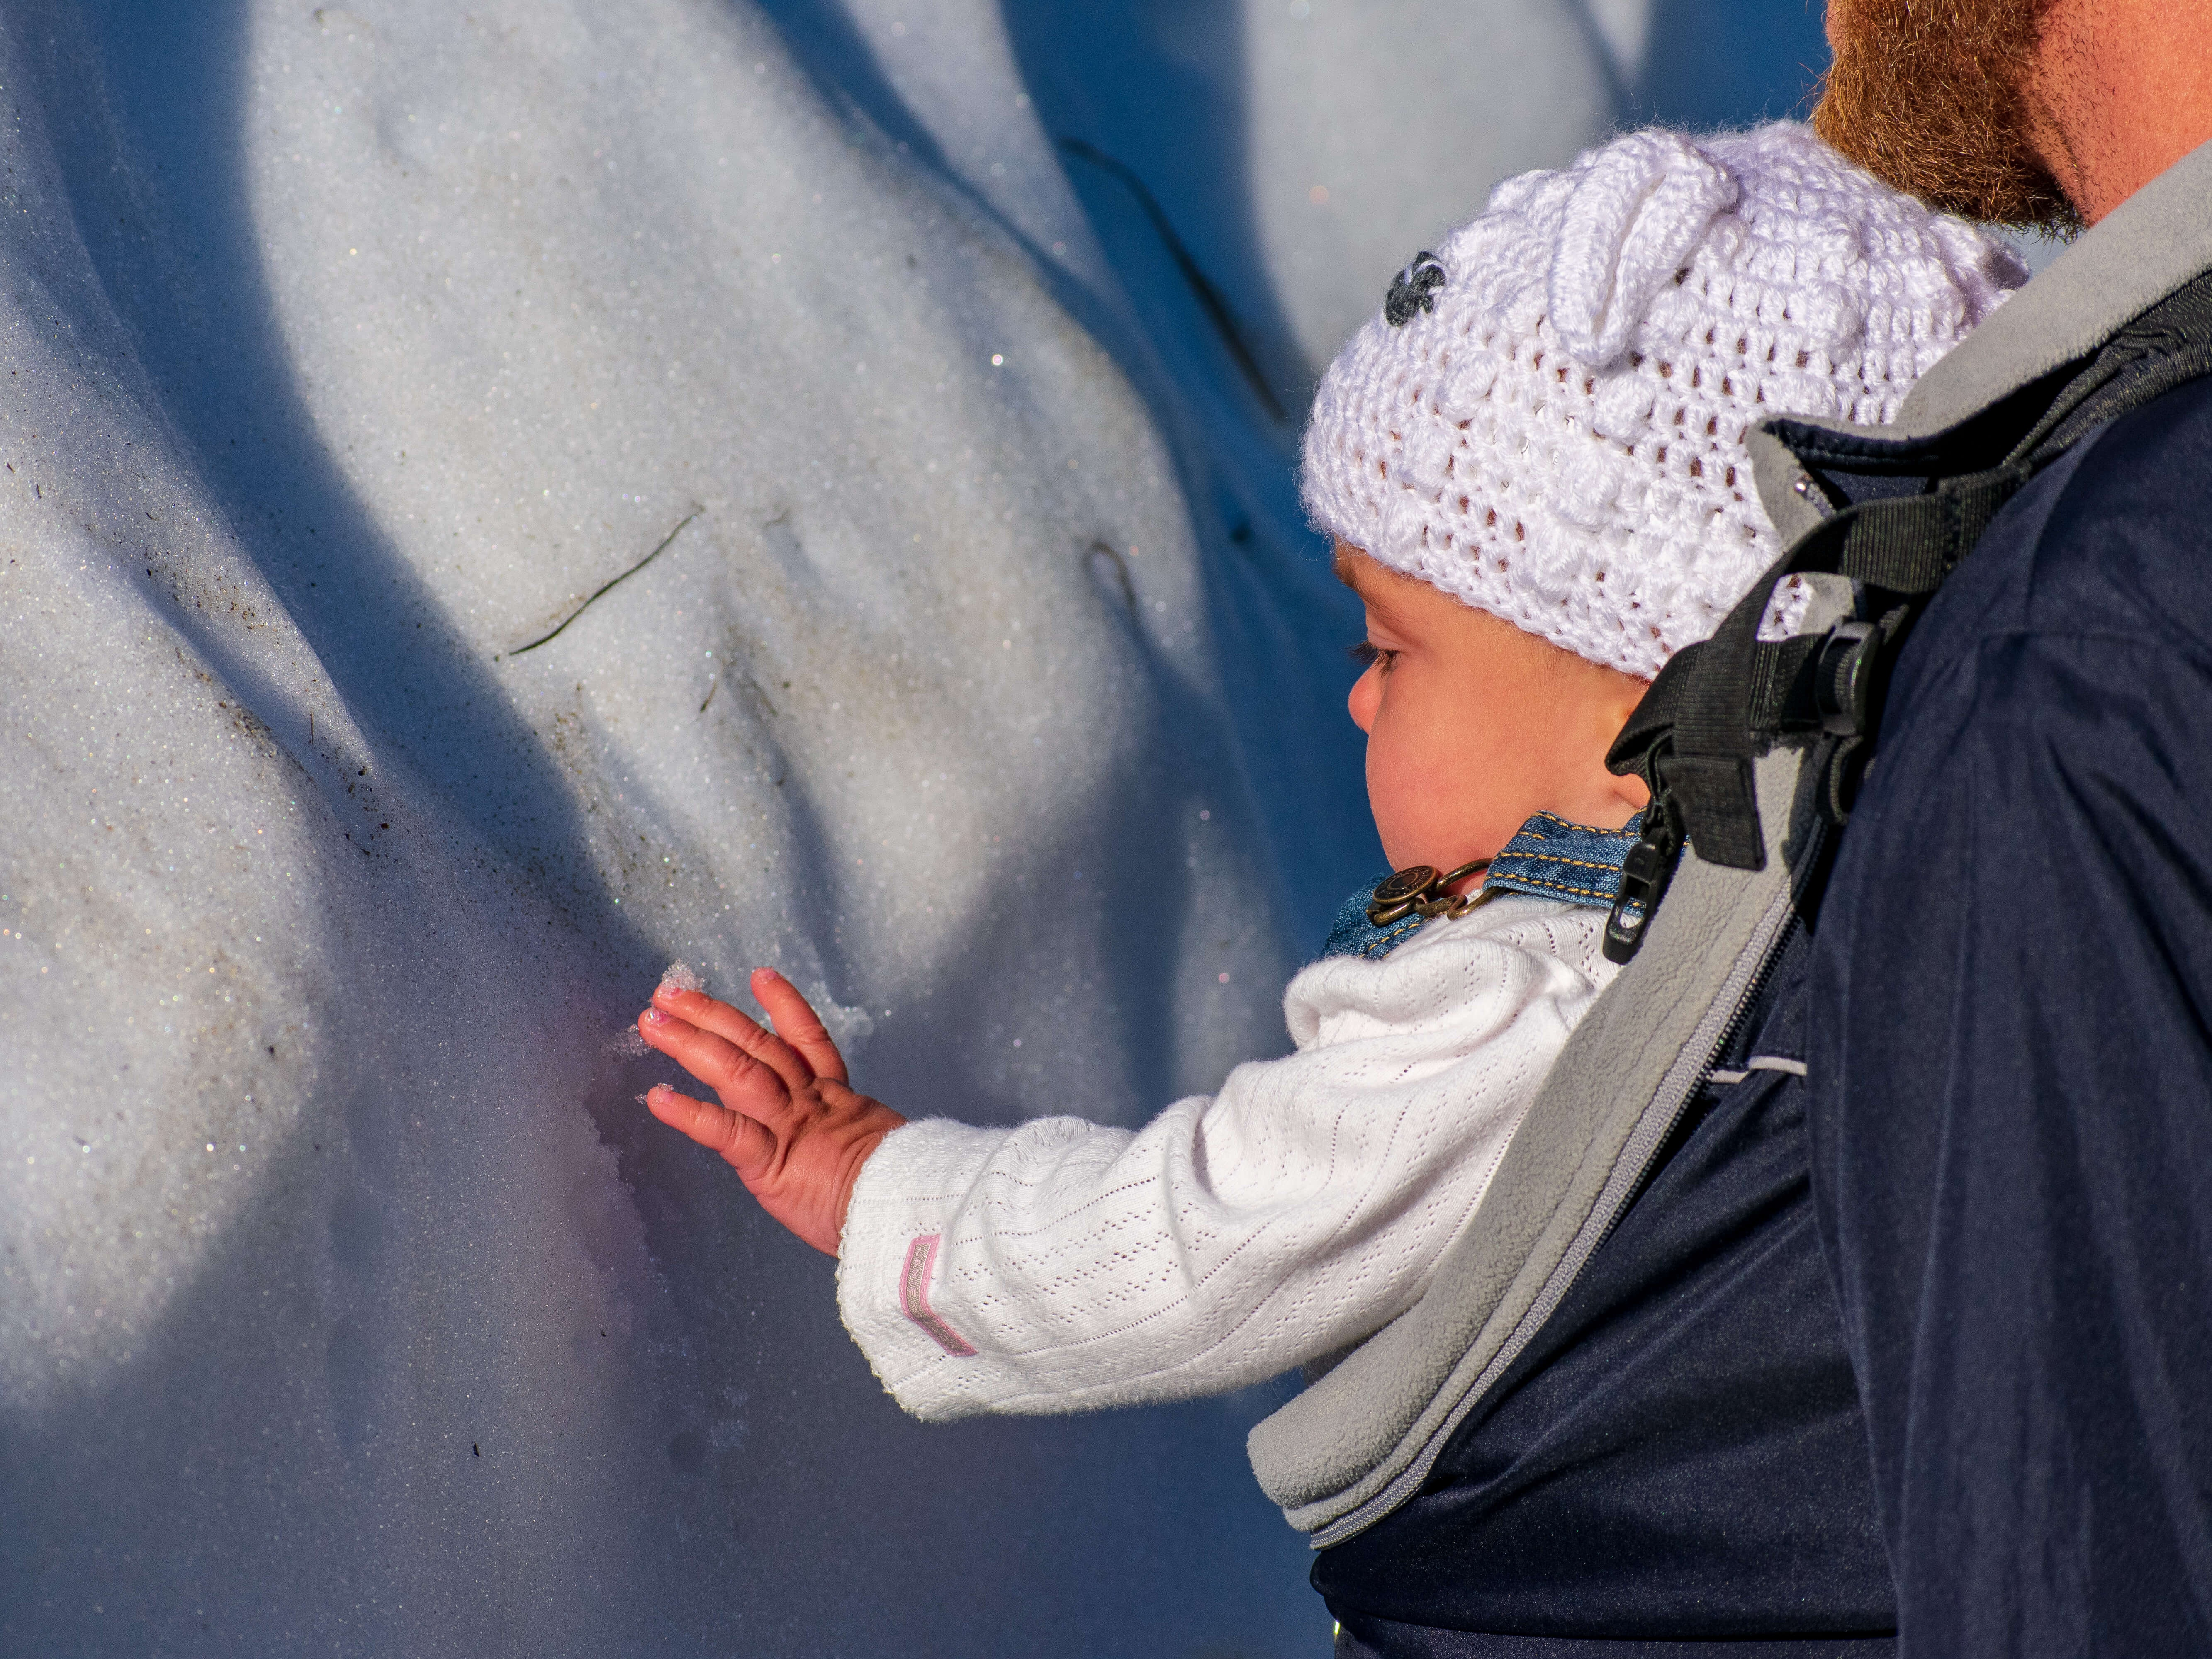 Baby touching snow